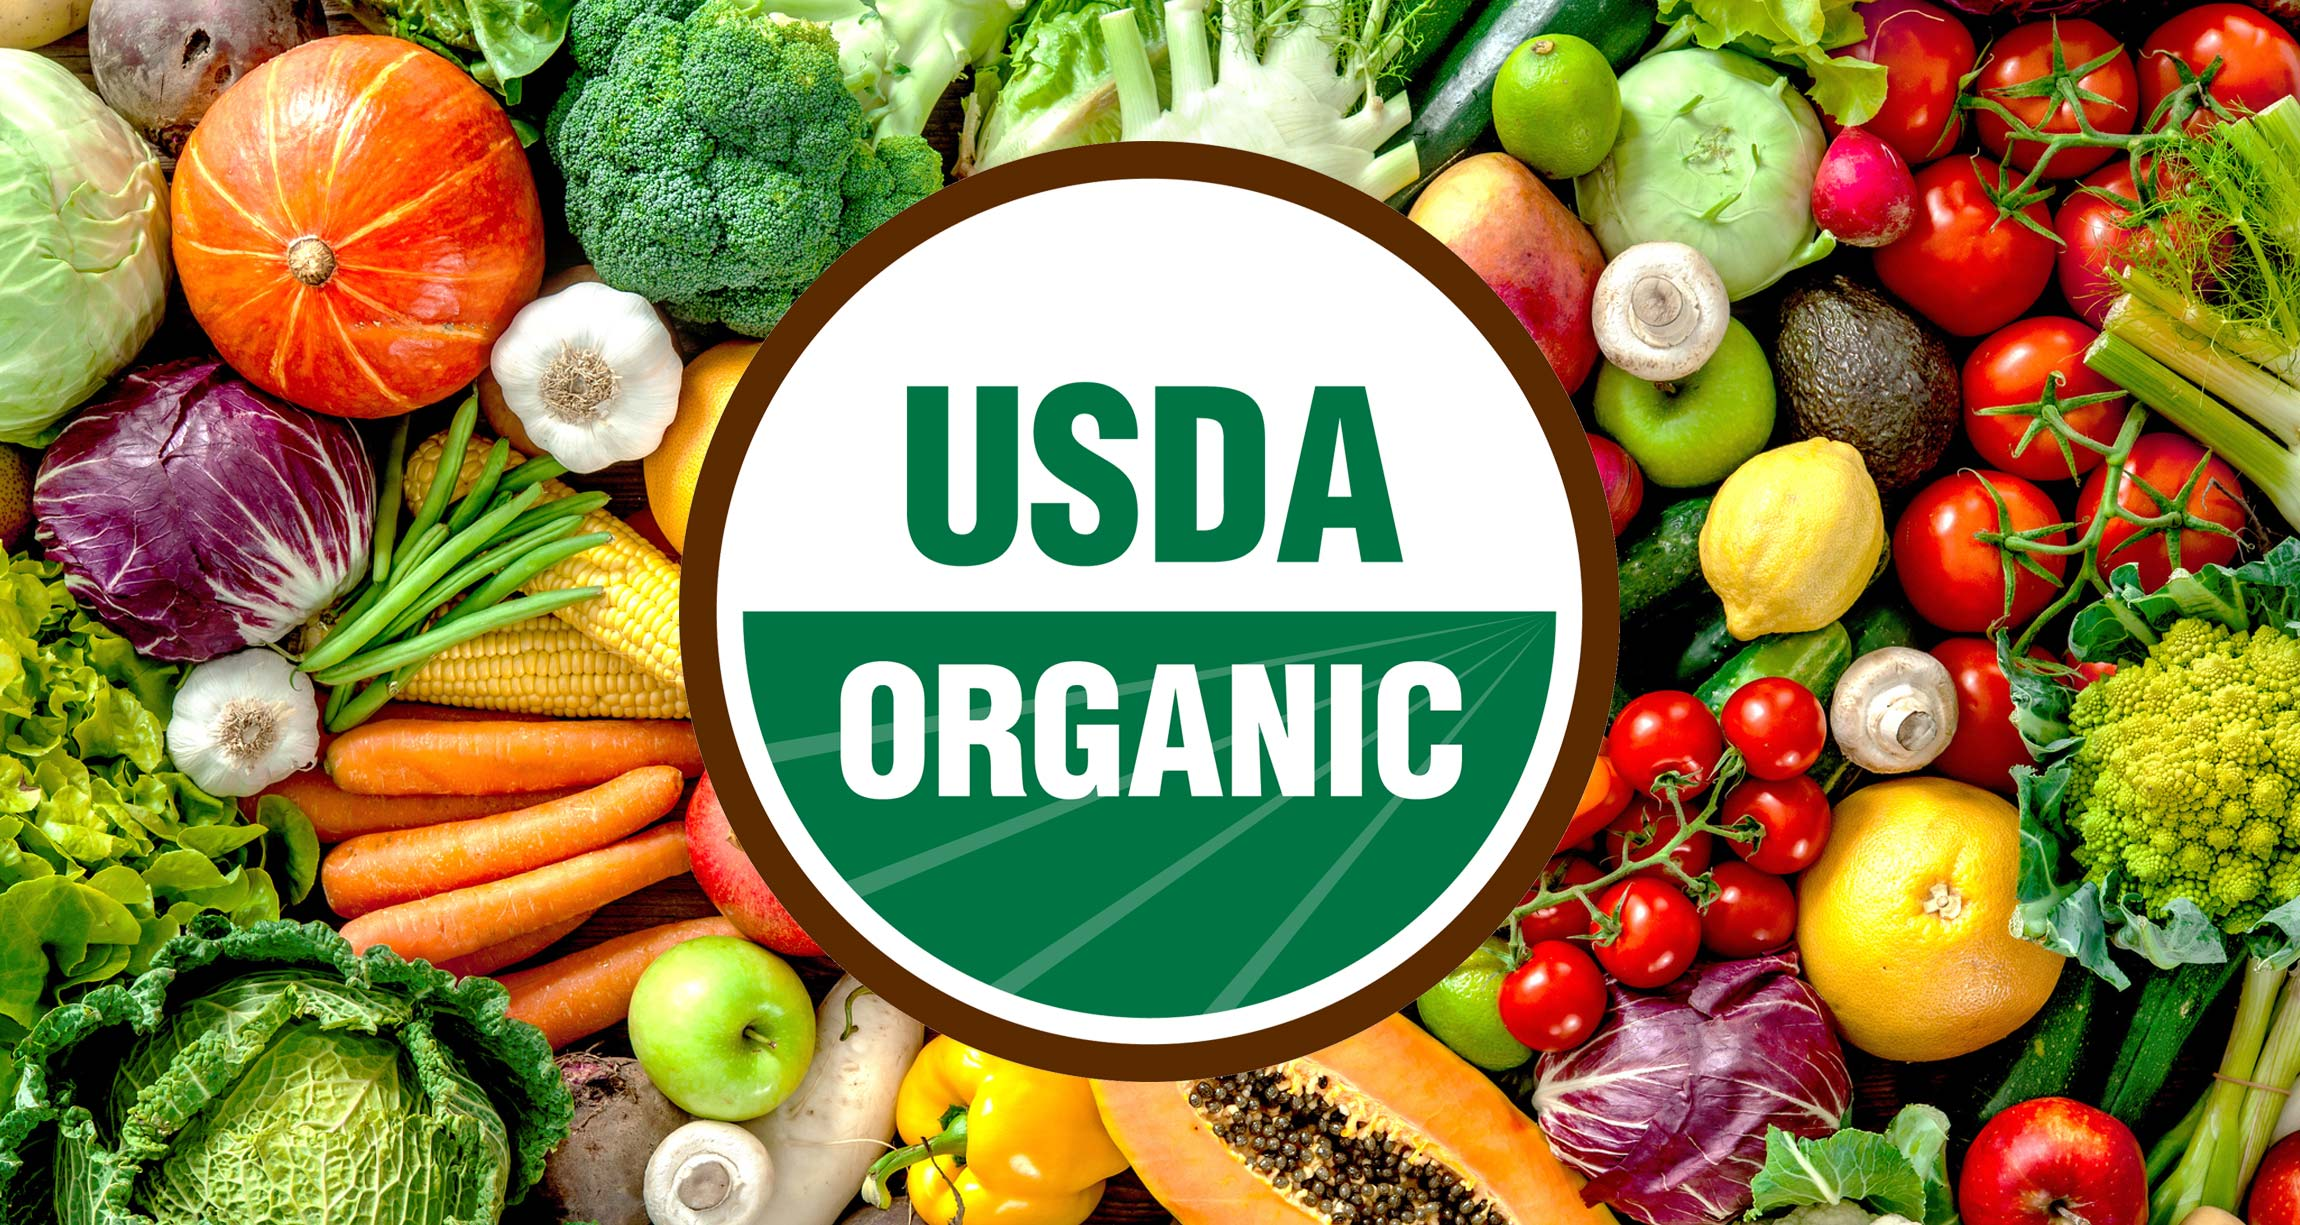 10 Reasons Why You Should Choose The Organic Food Label Over The Non-GMO Label